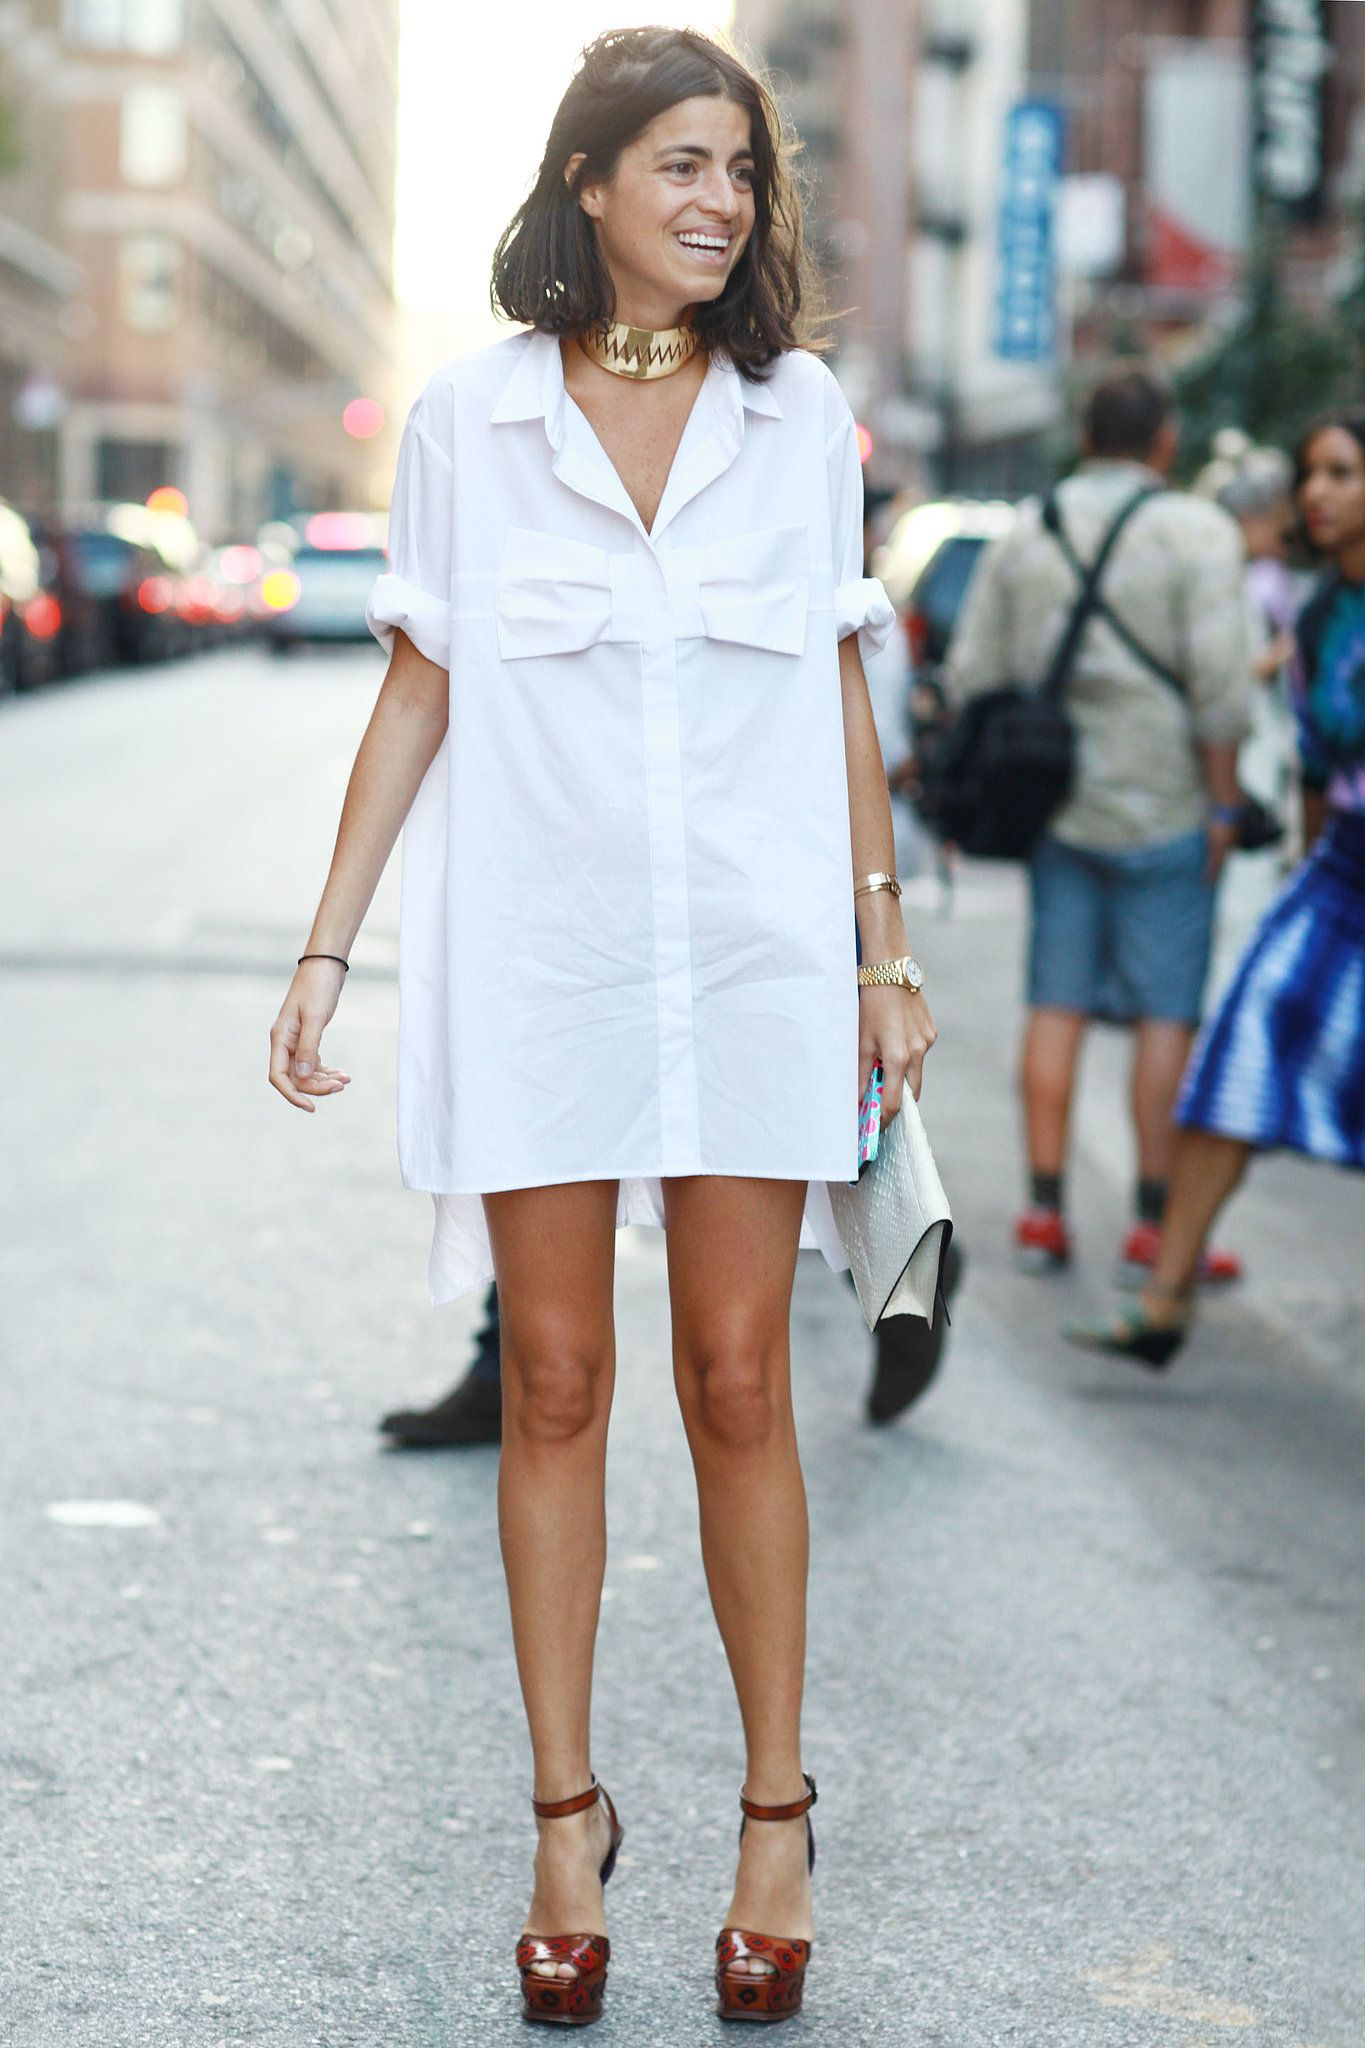 Casual flowy white dress fashion style 2015 - Leandra Medine Channeled Tom Cruise S Risky Business Days In A White Shirtdress Streetstyle